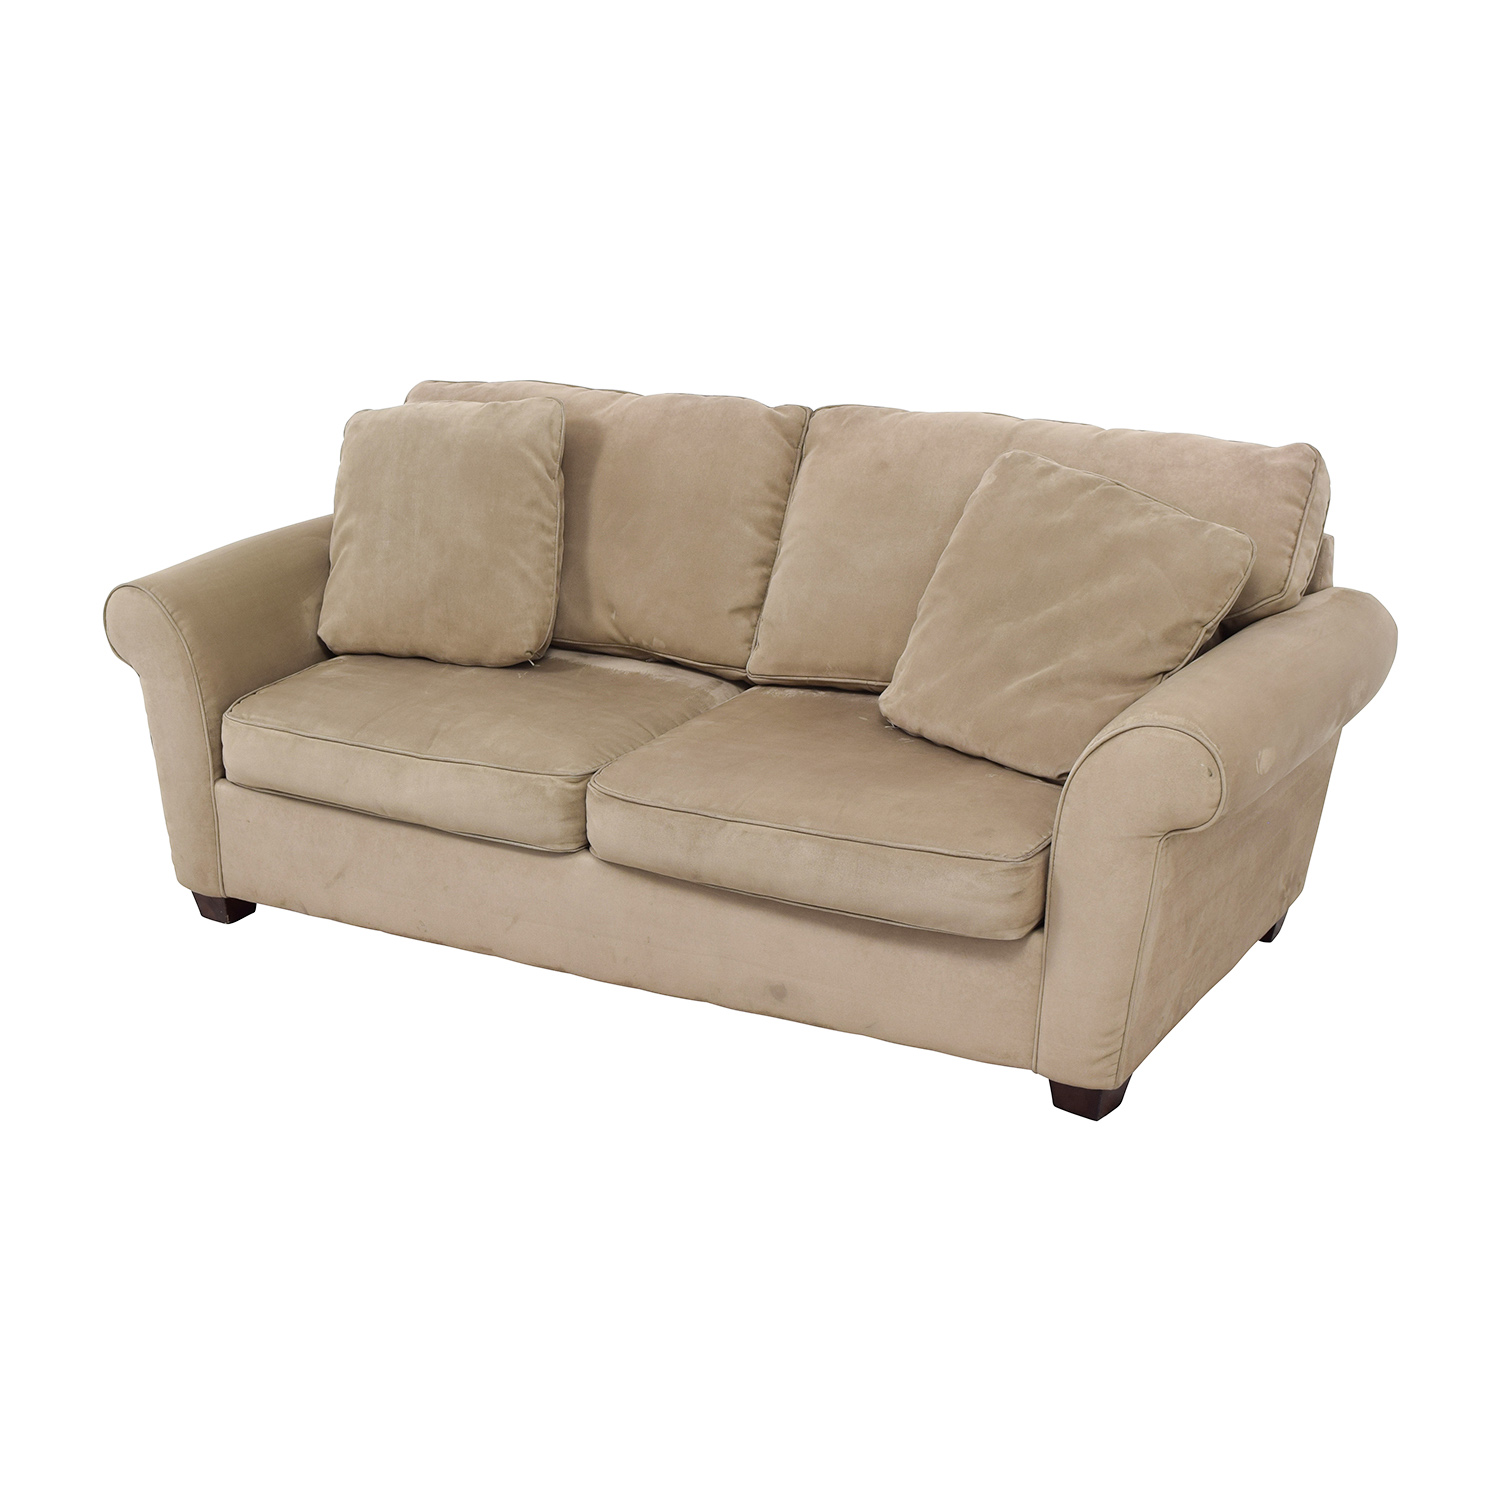 today reclining camel product tan microfiber sensation set home shipping free dual overstock sofa loveseat garden